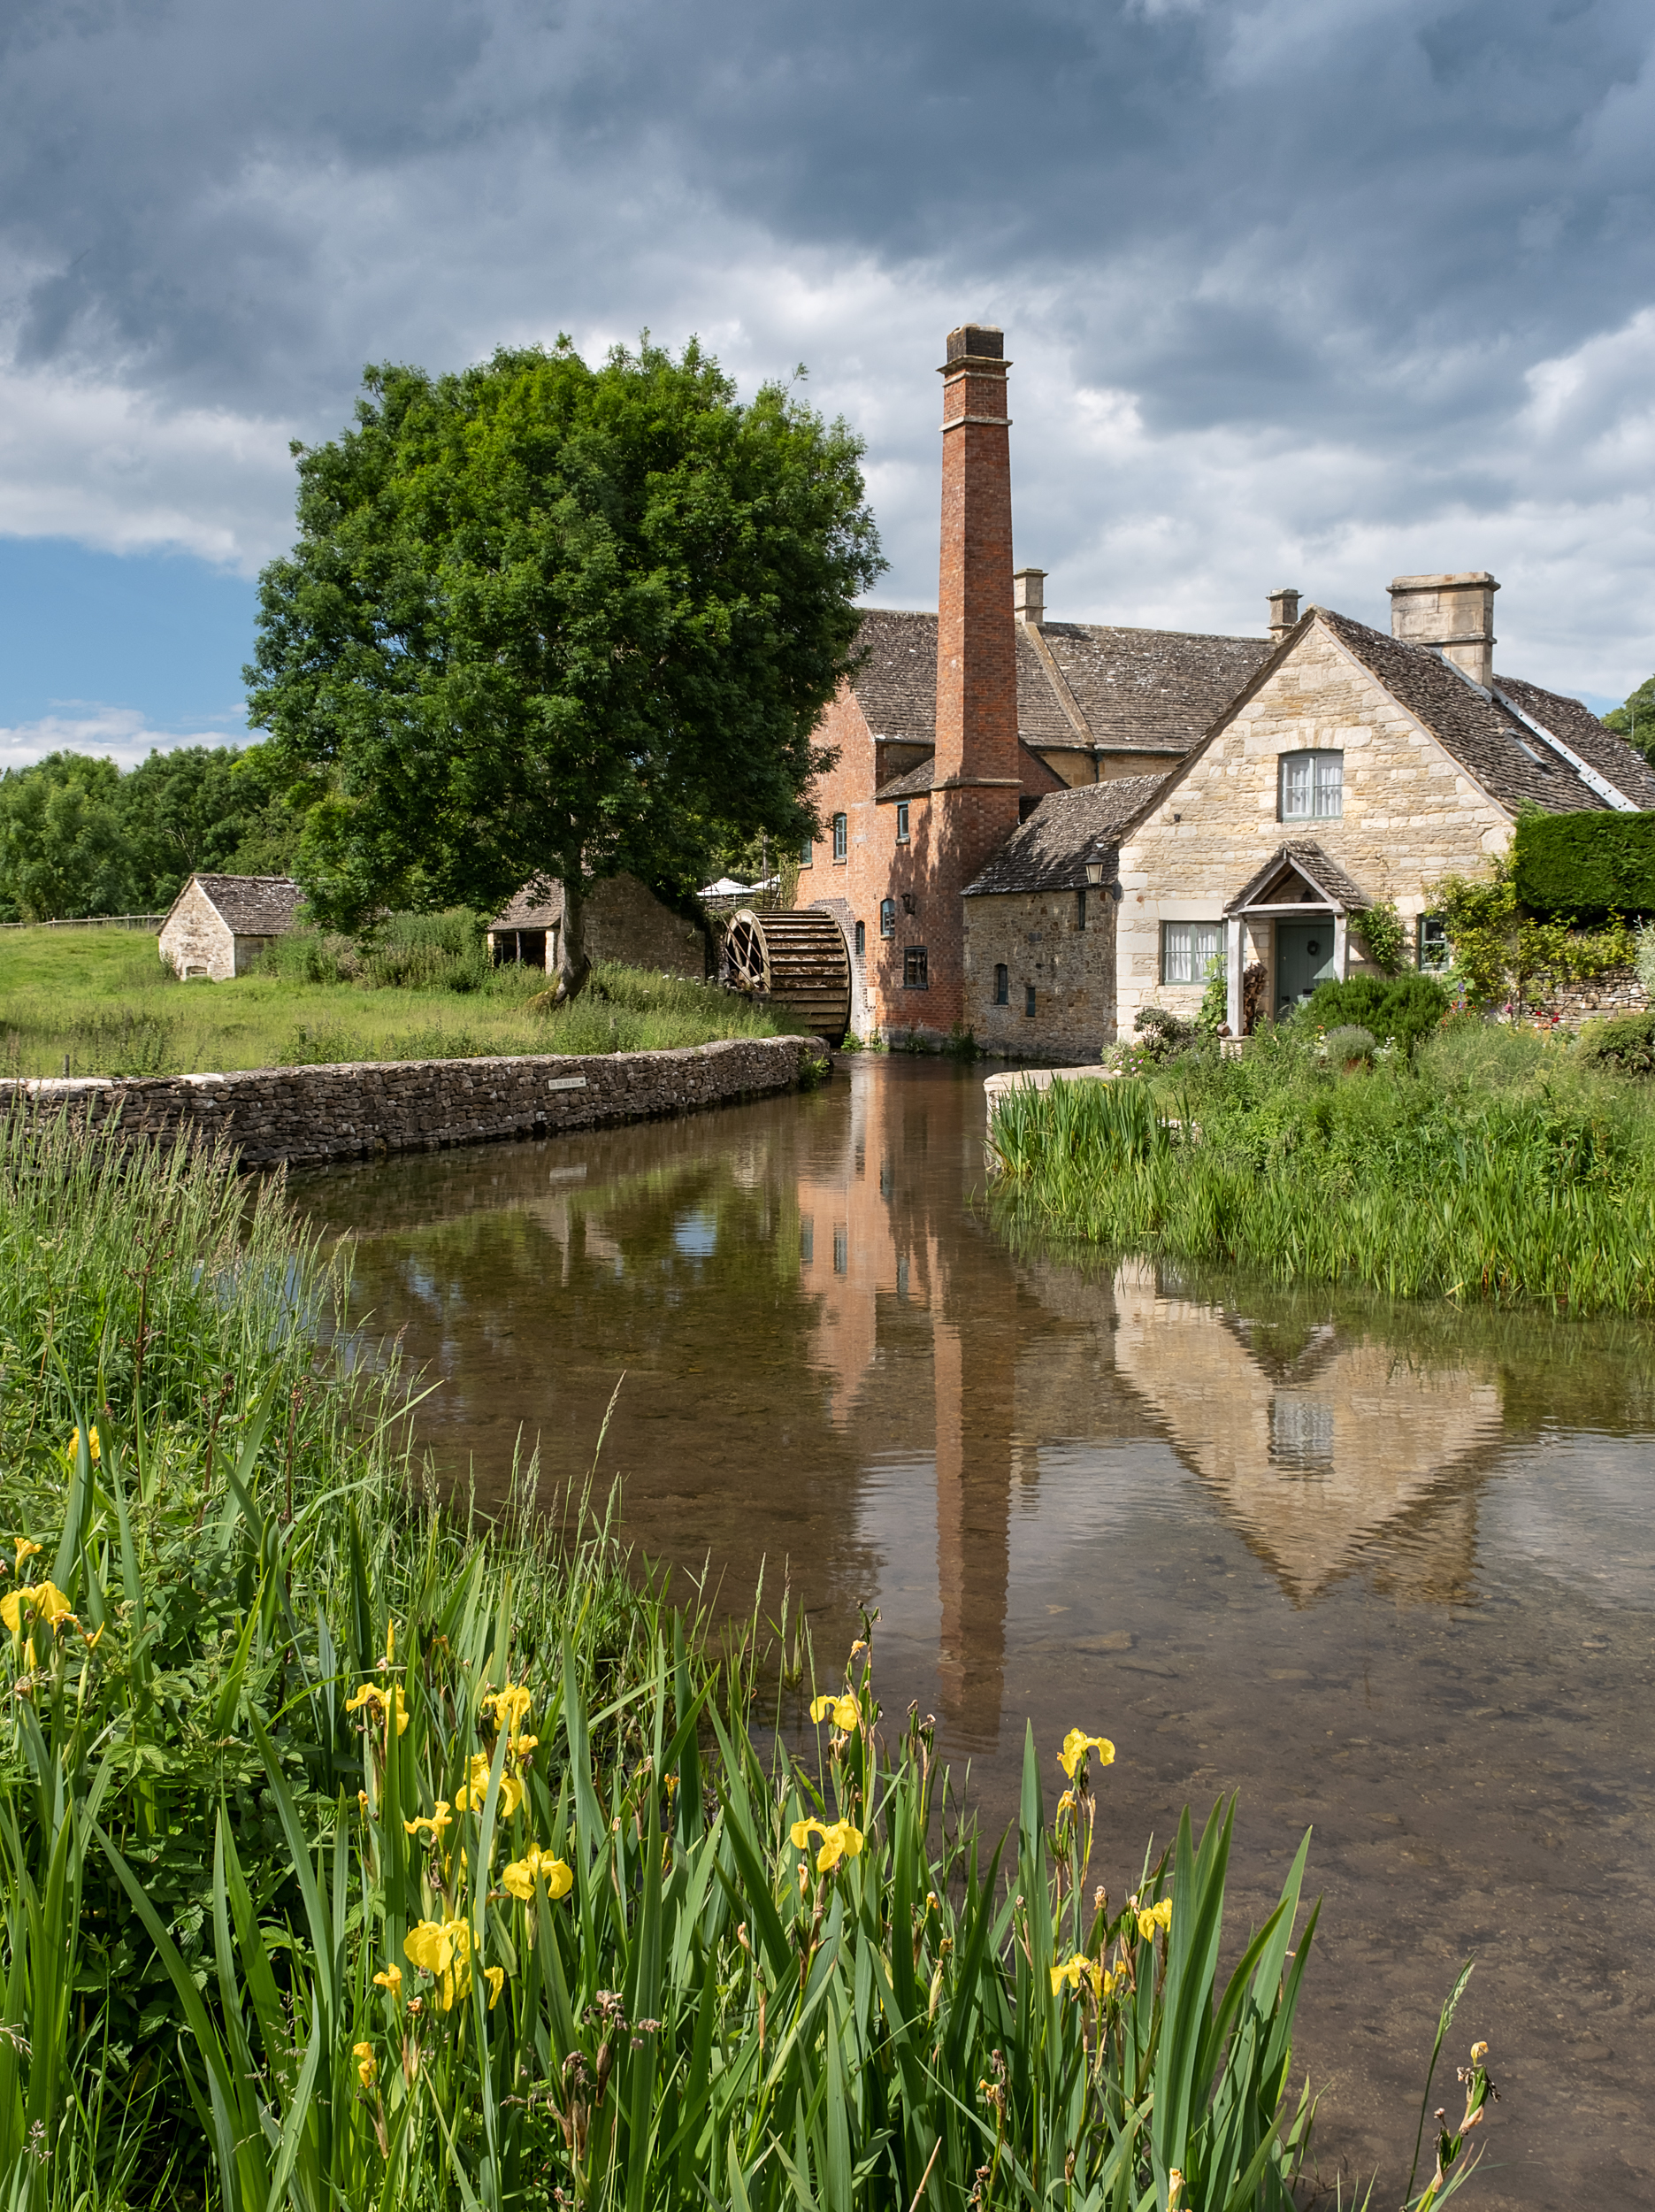 20190619_cotswolds-644-Edit.jpg